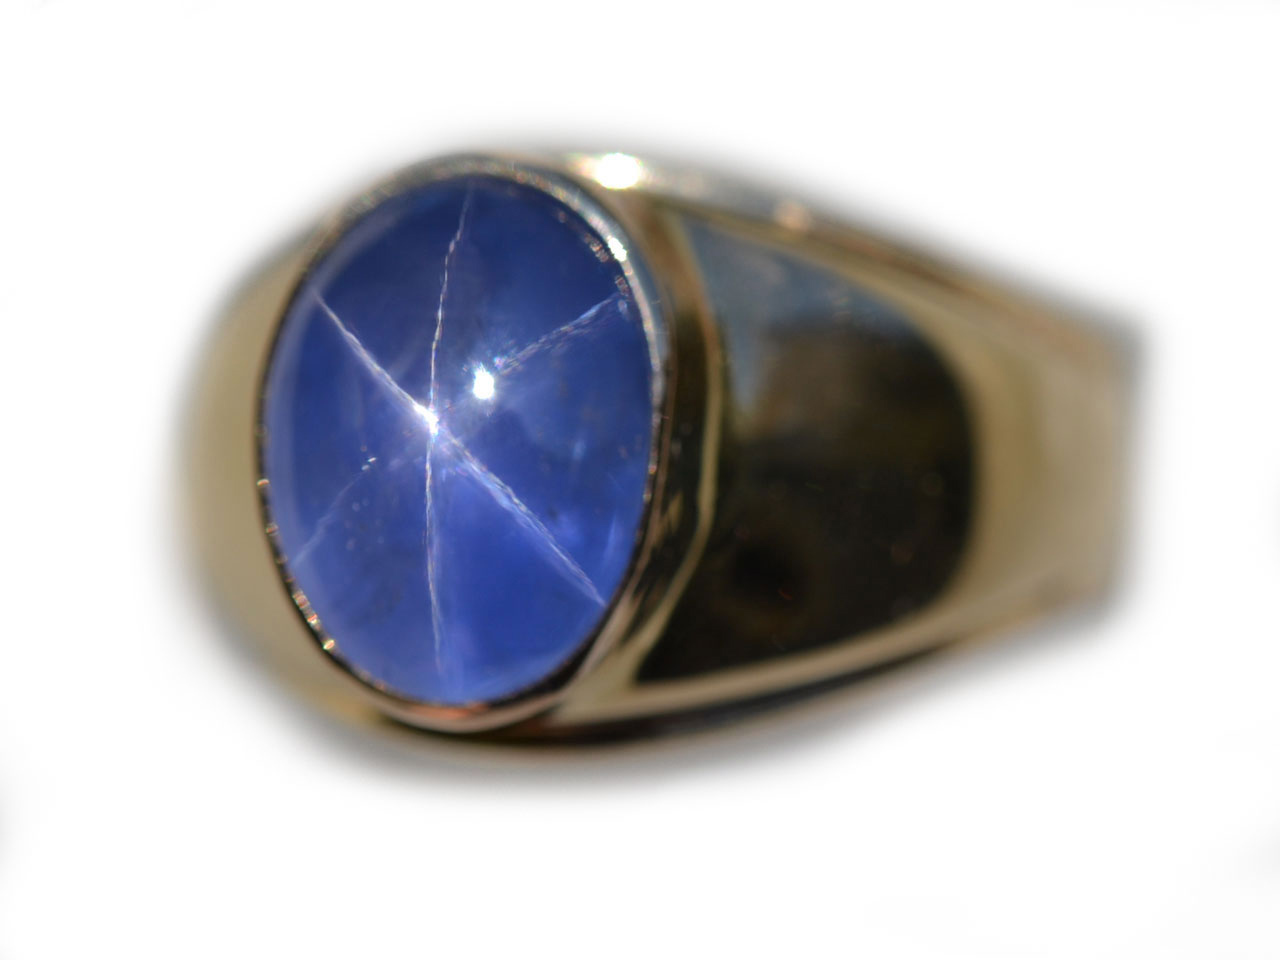 AGL Certified Untreated Mens Blue Star Sapphire Ring 9.3 cts in 14K Yellow Gold